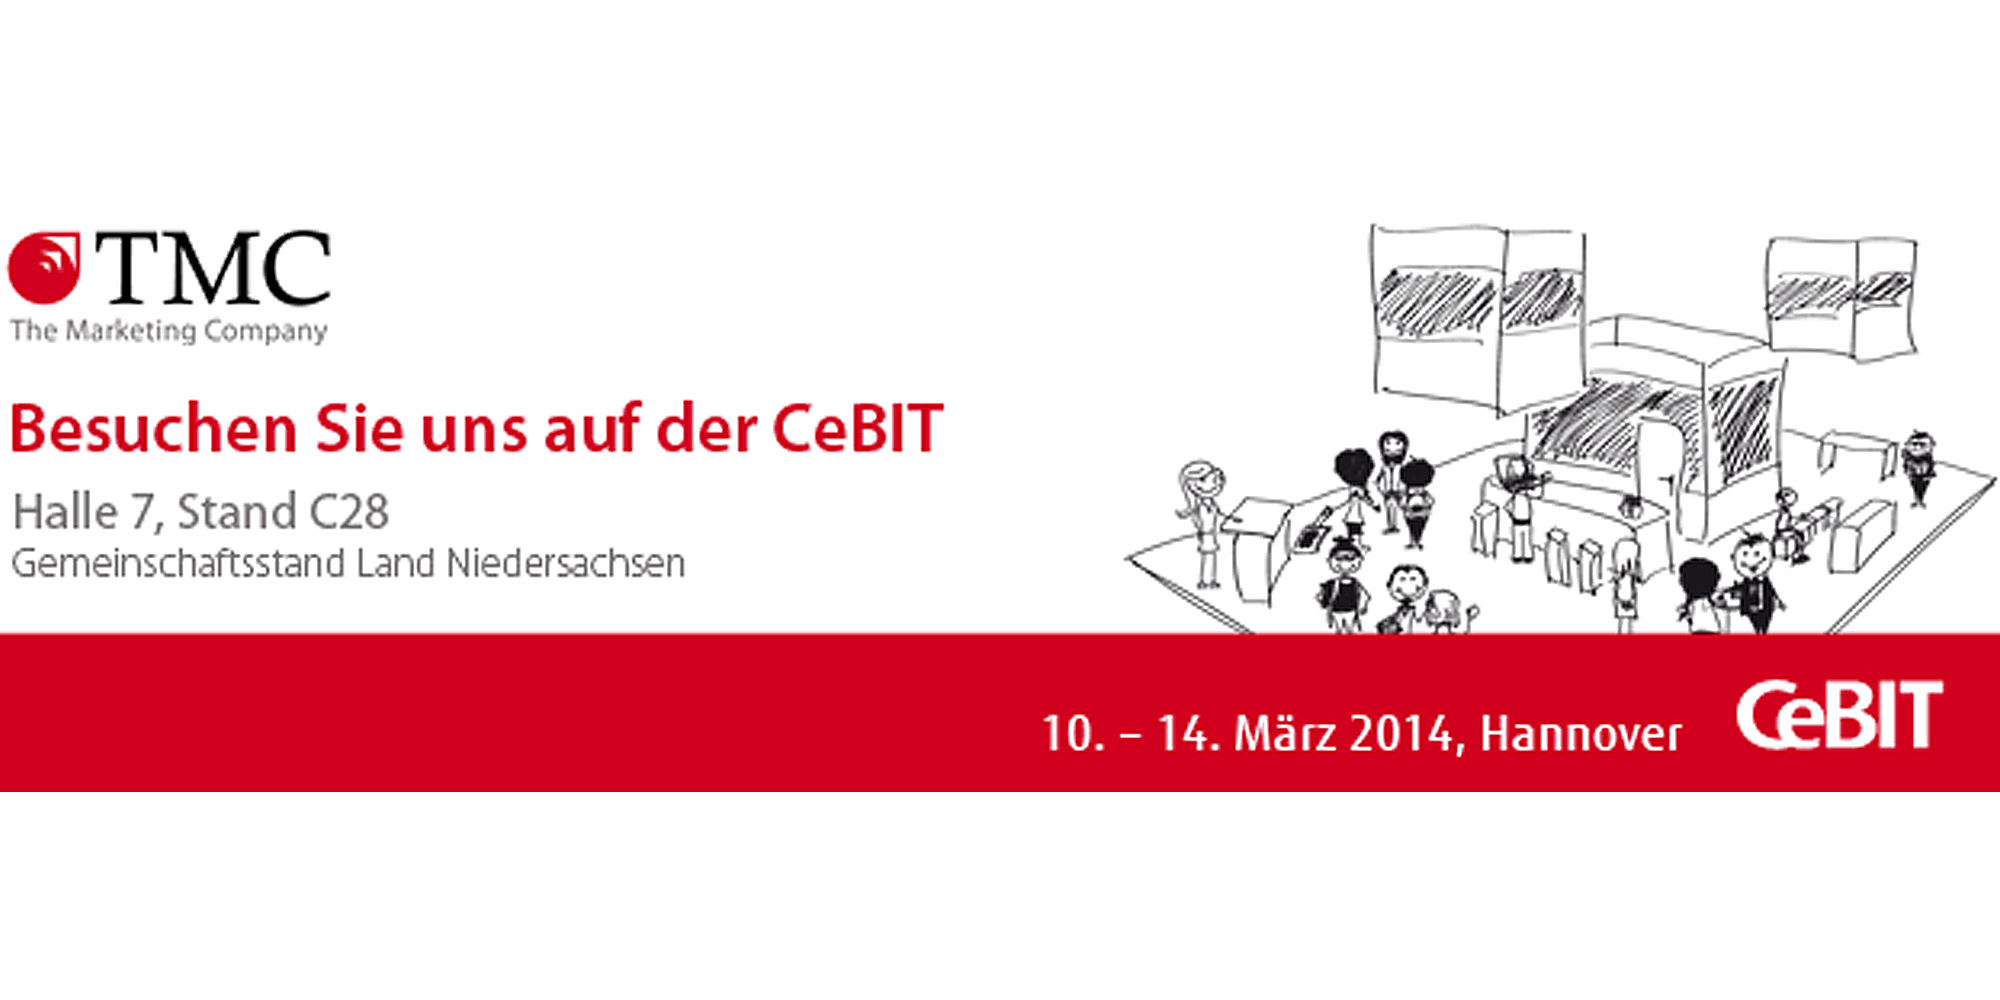 CeBIT 2014 – IT meets Marketing